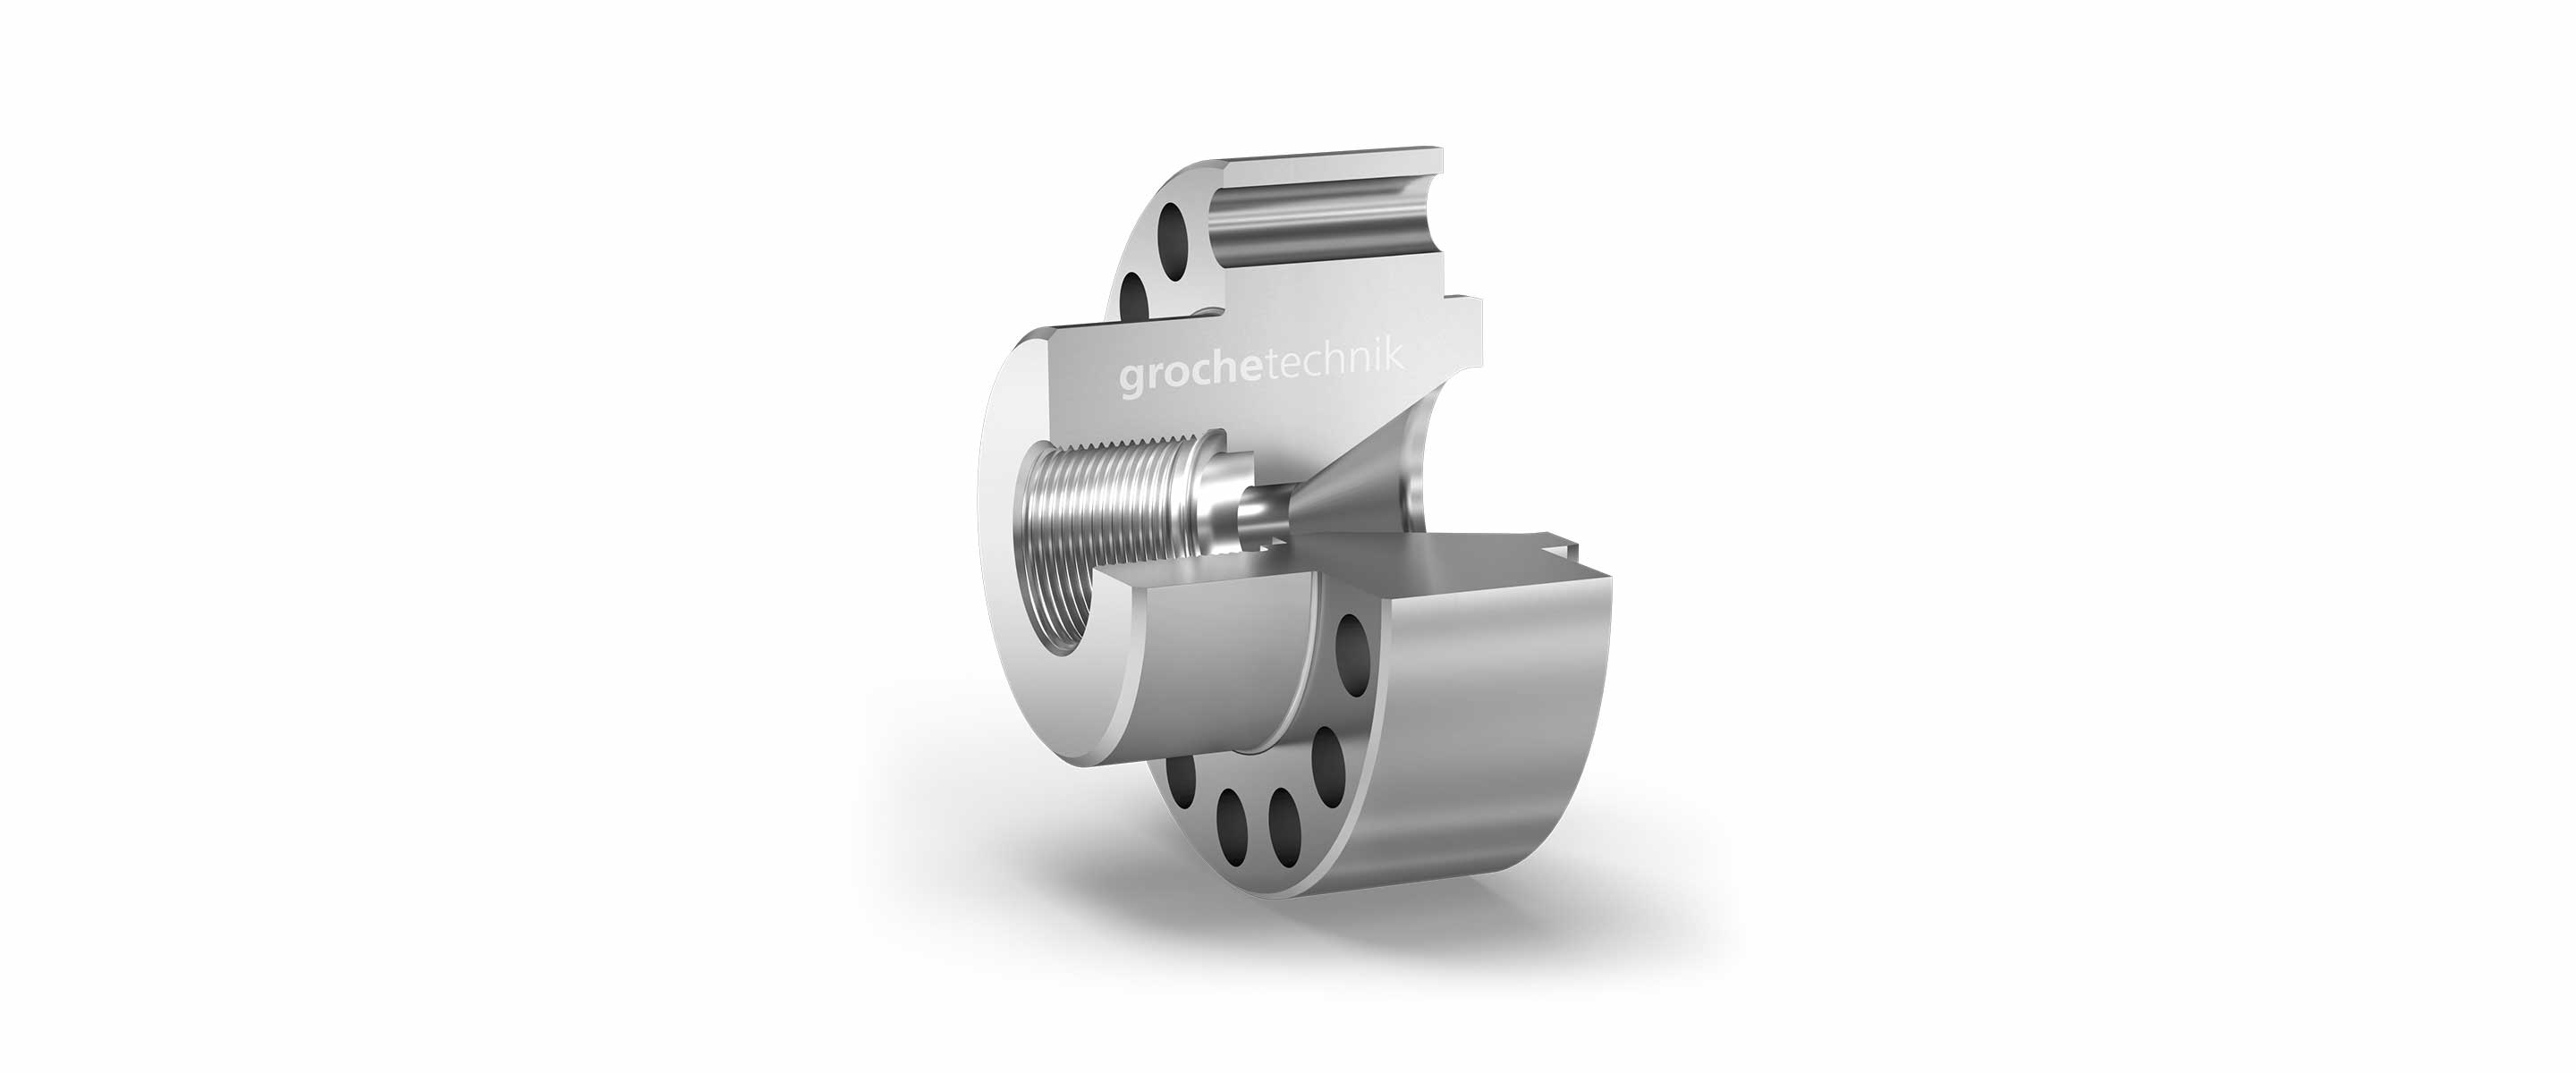 Flange connections are avail- able for all types of machines according to requirements.